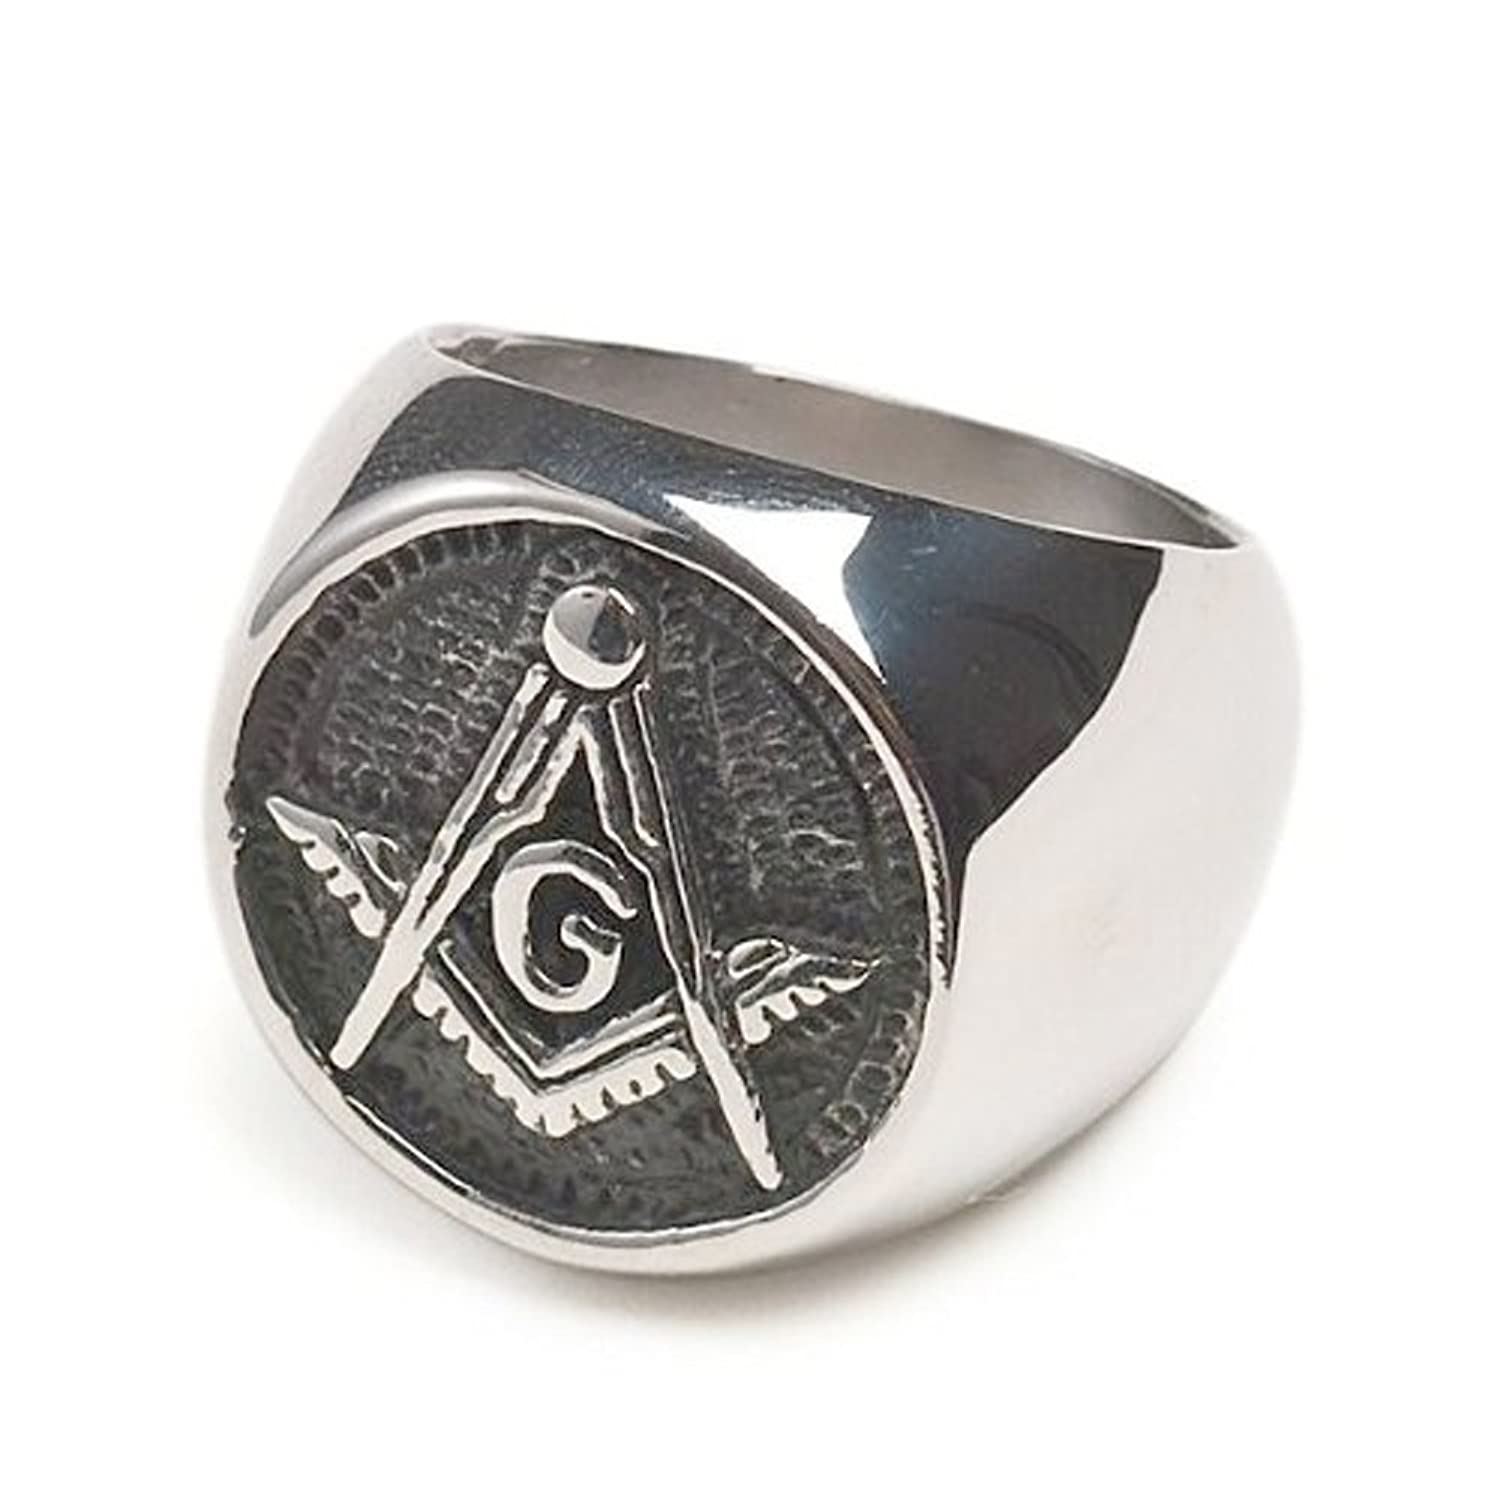 detail ring skull masonic rings asp mr freemason jw